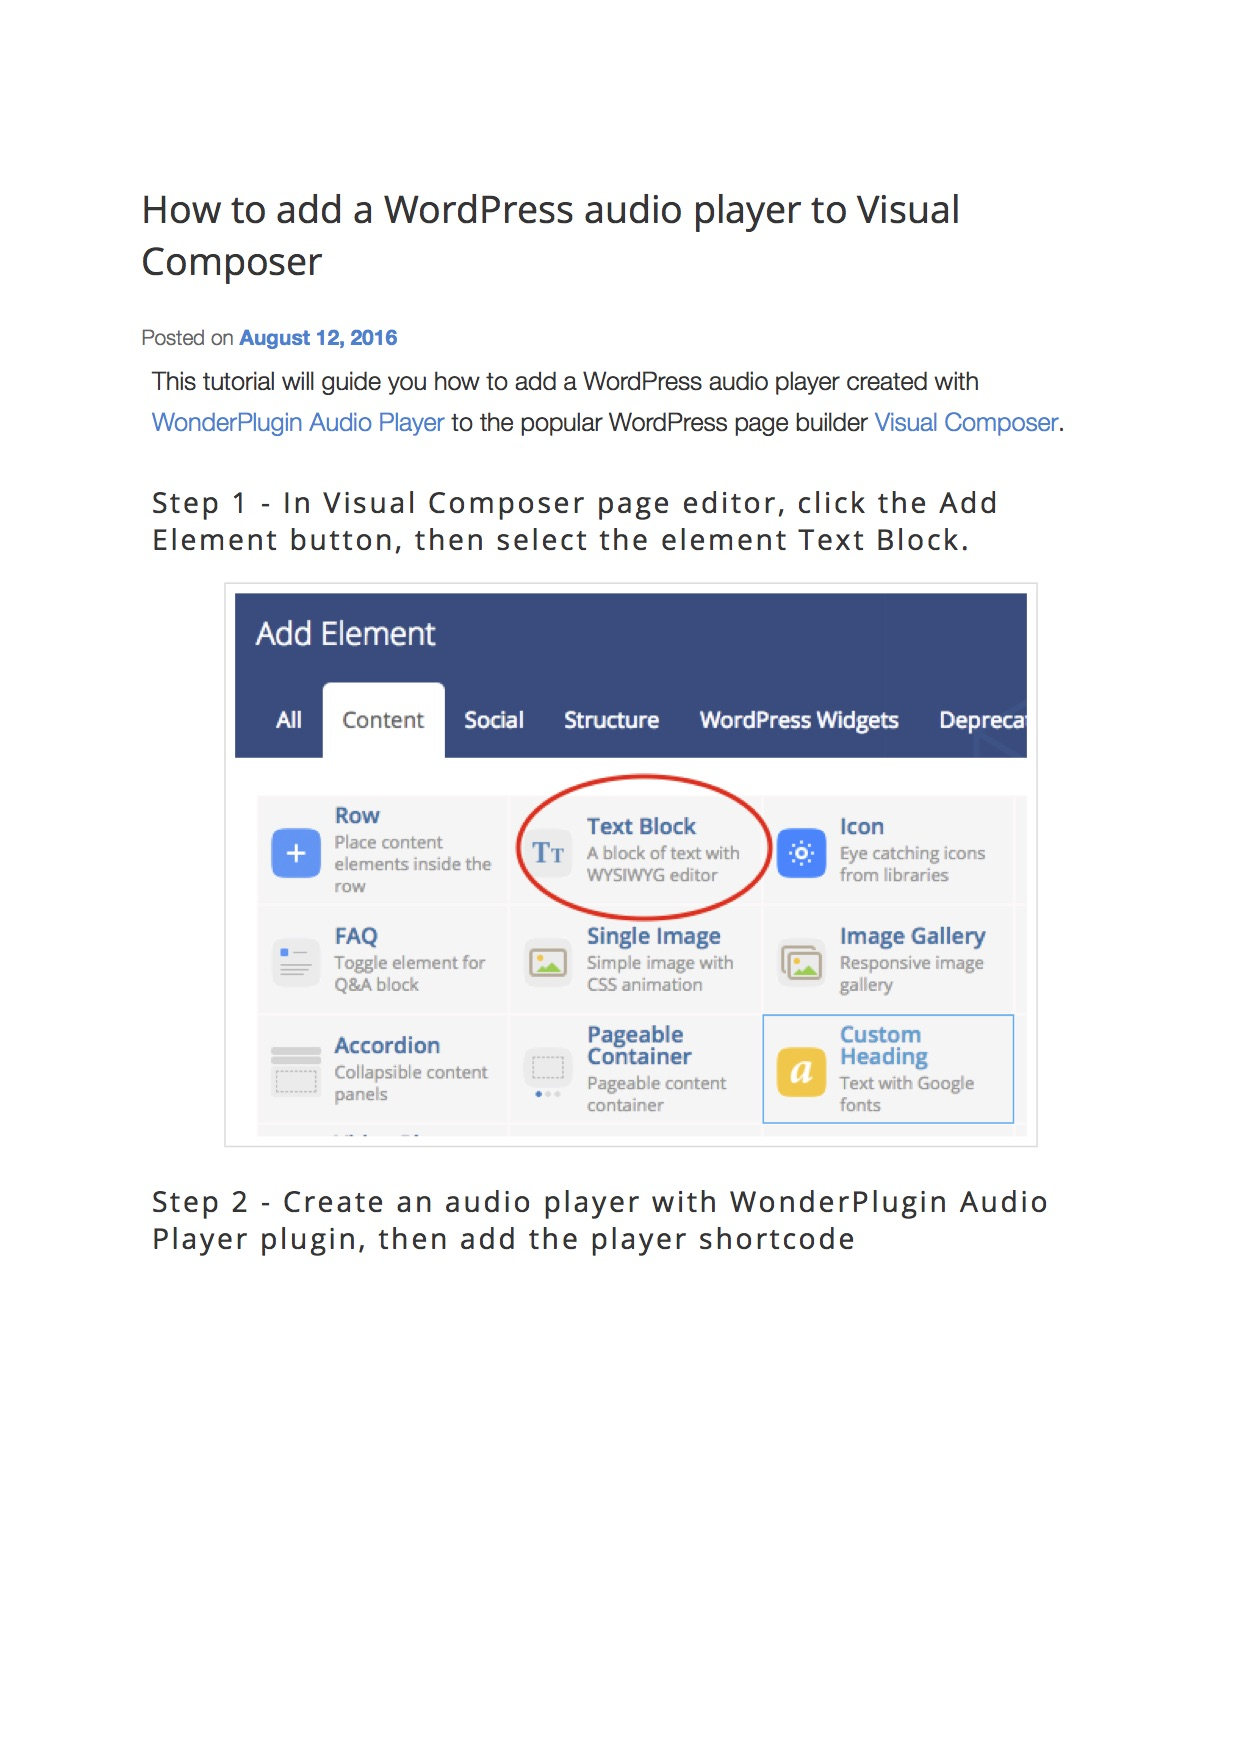 How to add a WordPress audio player to Visual Composer